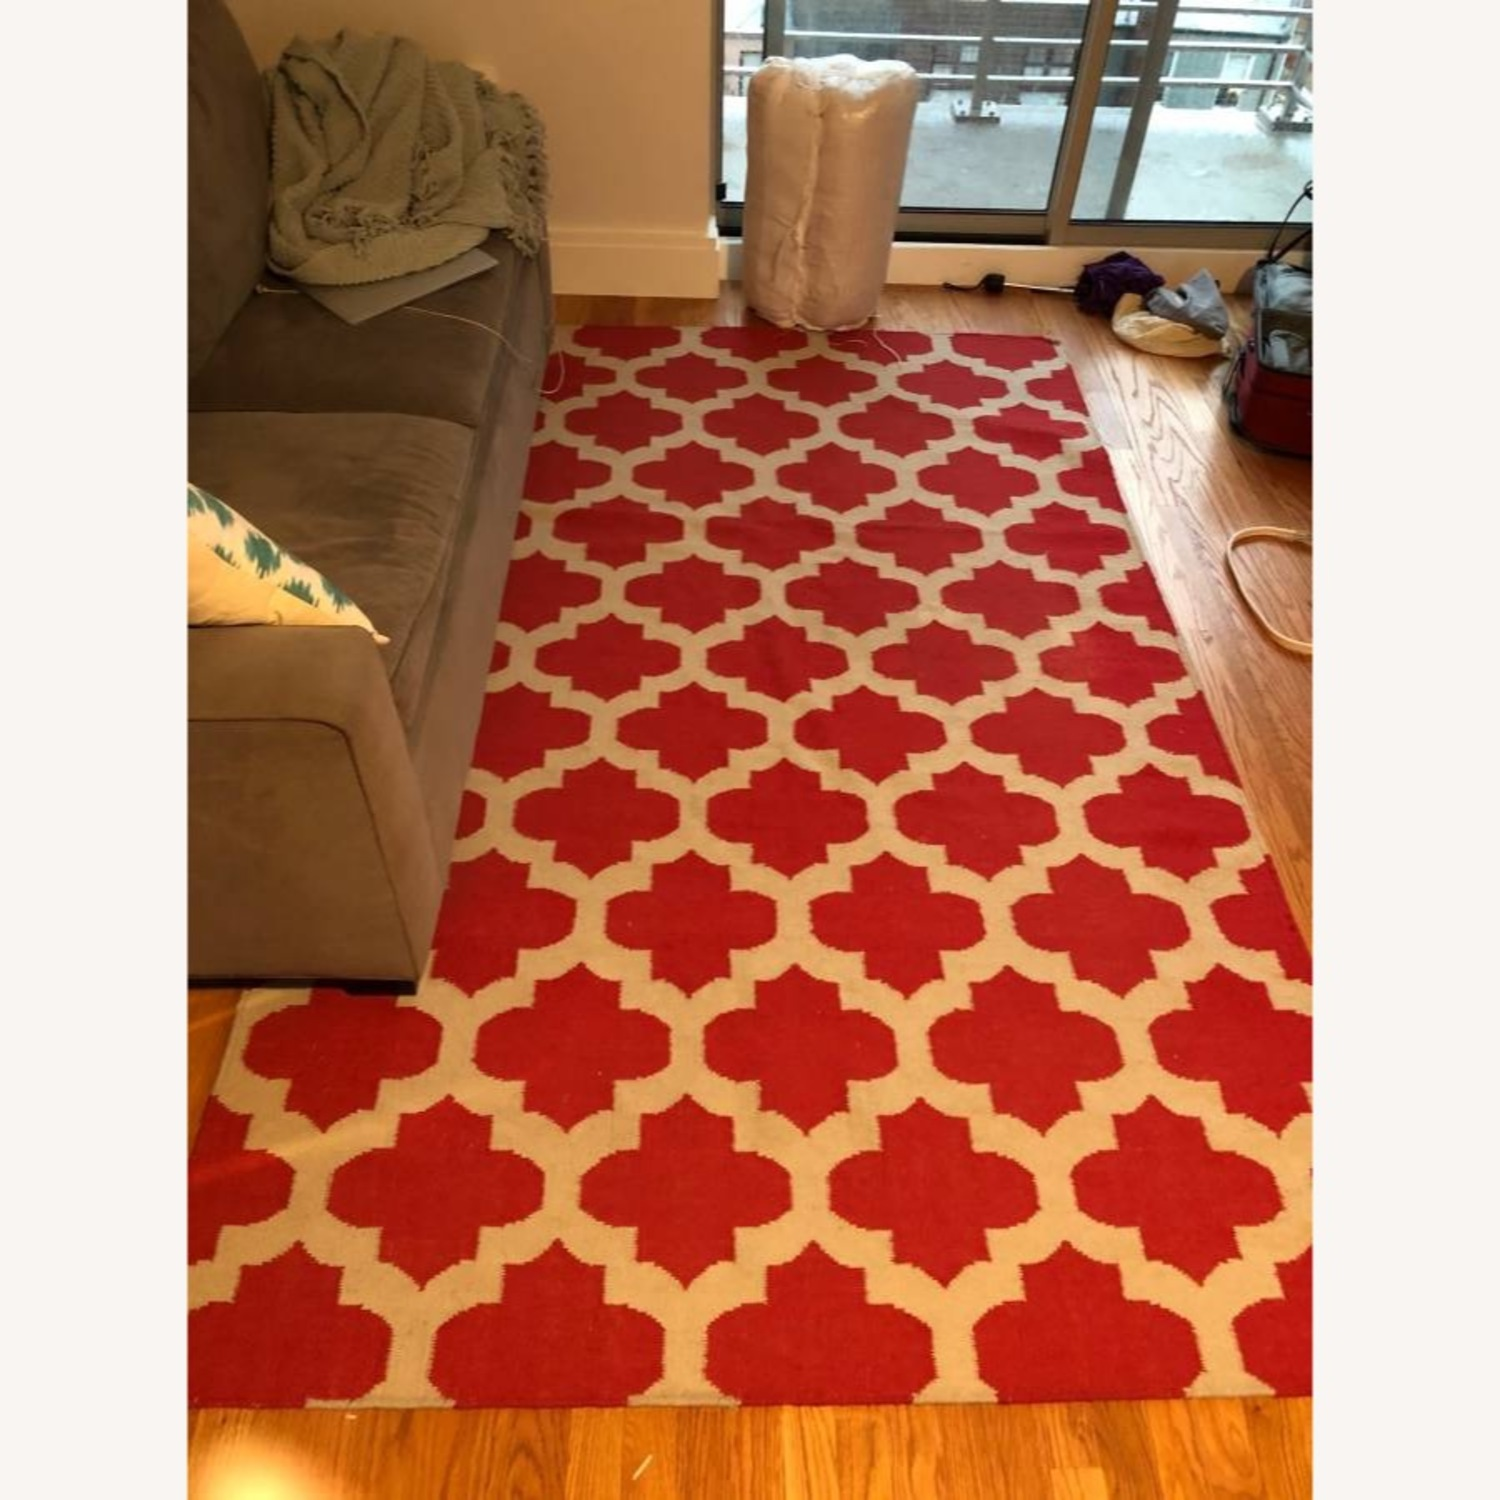 Safavieh Red & White Moroccan Style Rug - image-3